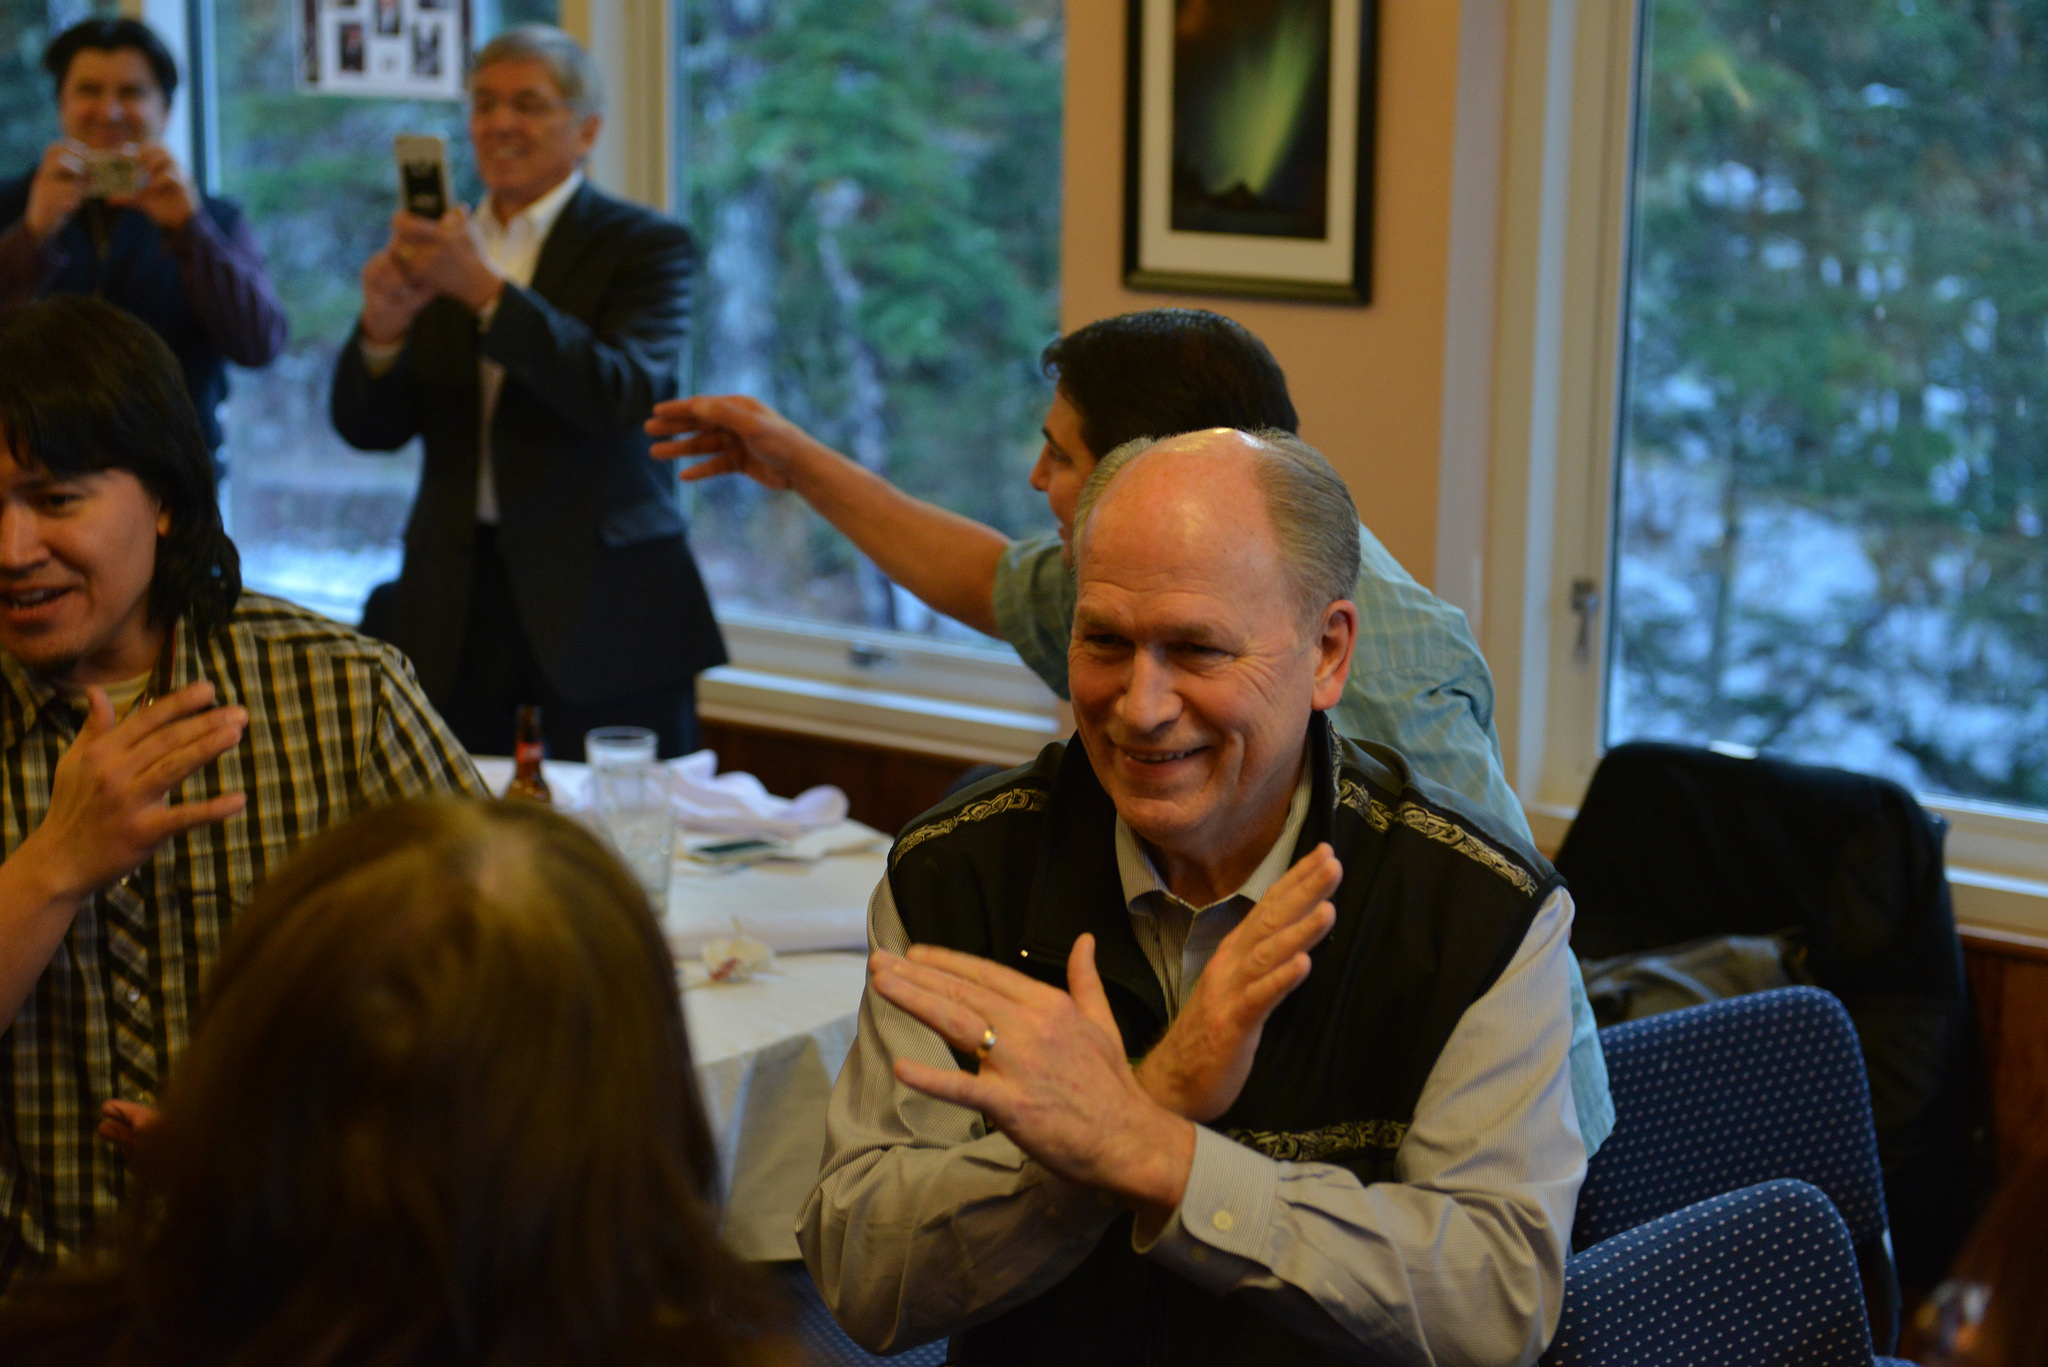 Gov. Bill Walker dances during a ceremony at a Tlingit Haida Central Council function in Juneau where he was adopted into the Kaagwaantaan Clan, April 17, 2015.  (Creative Commons photo courtesy Alaska Governor's Office)